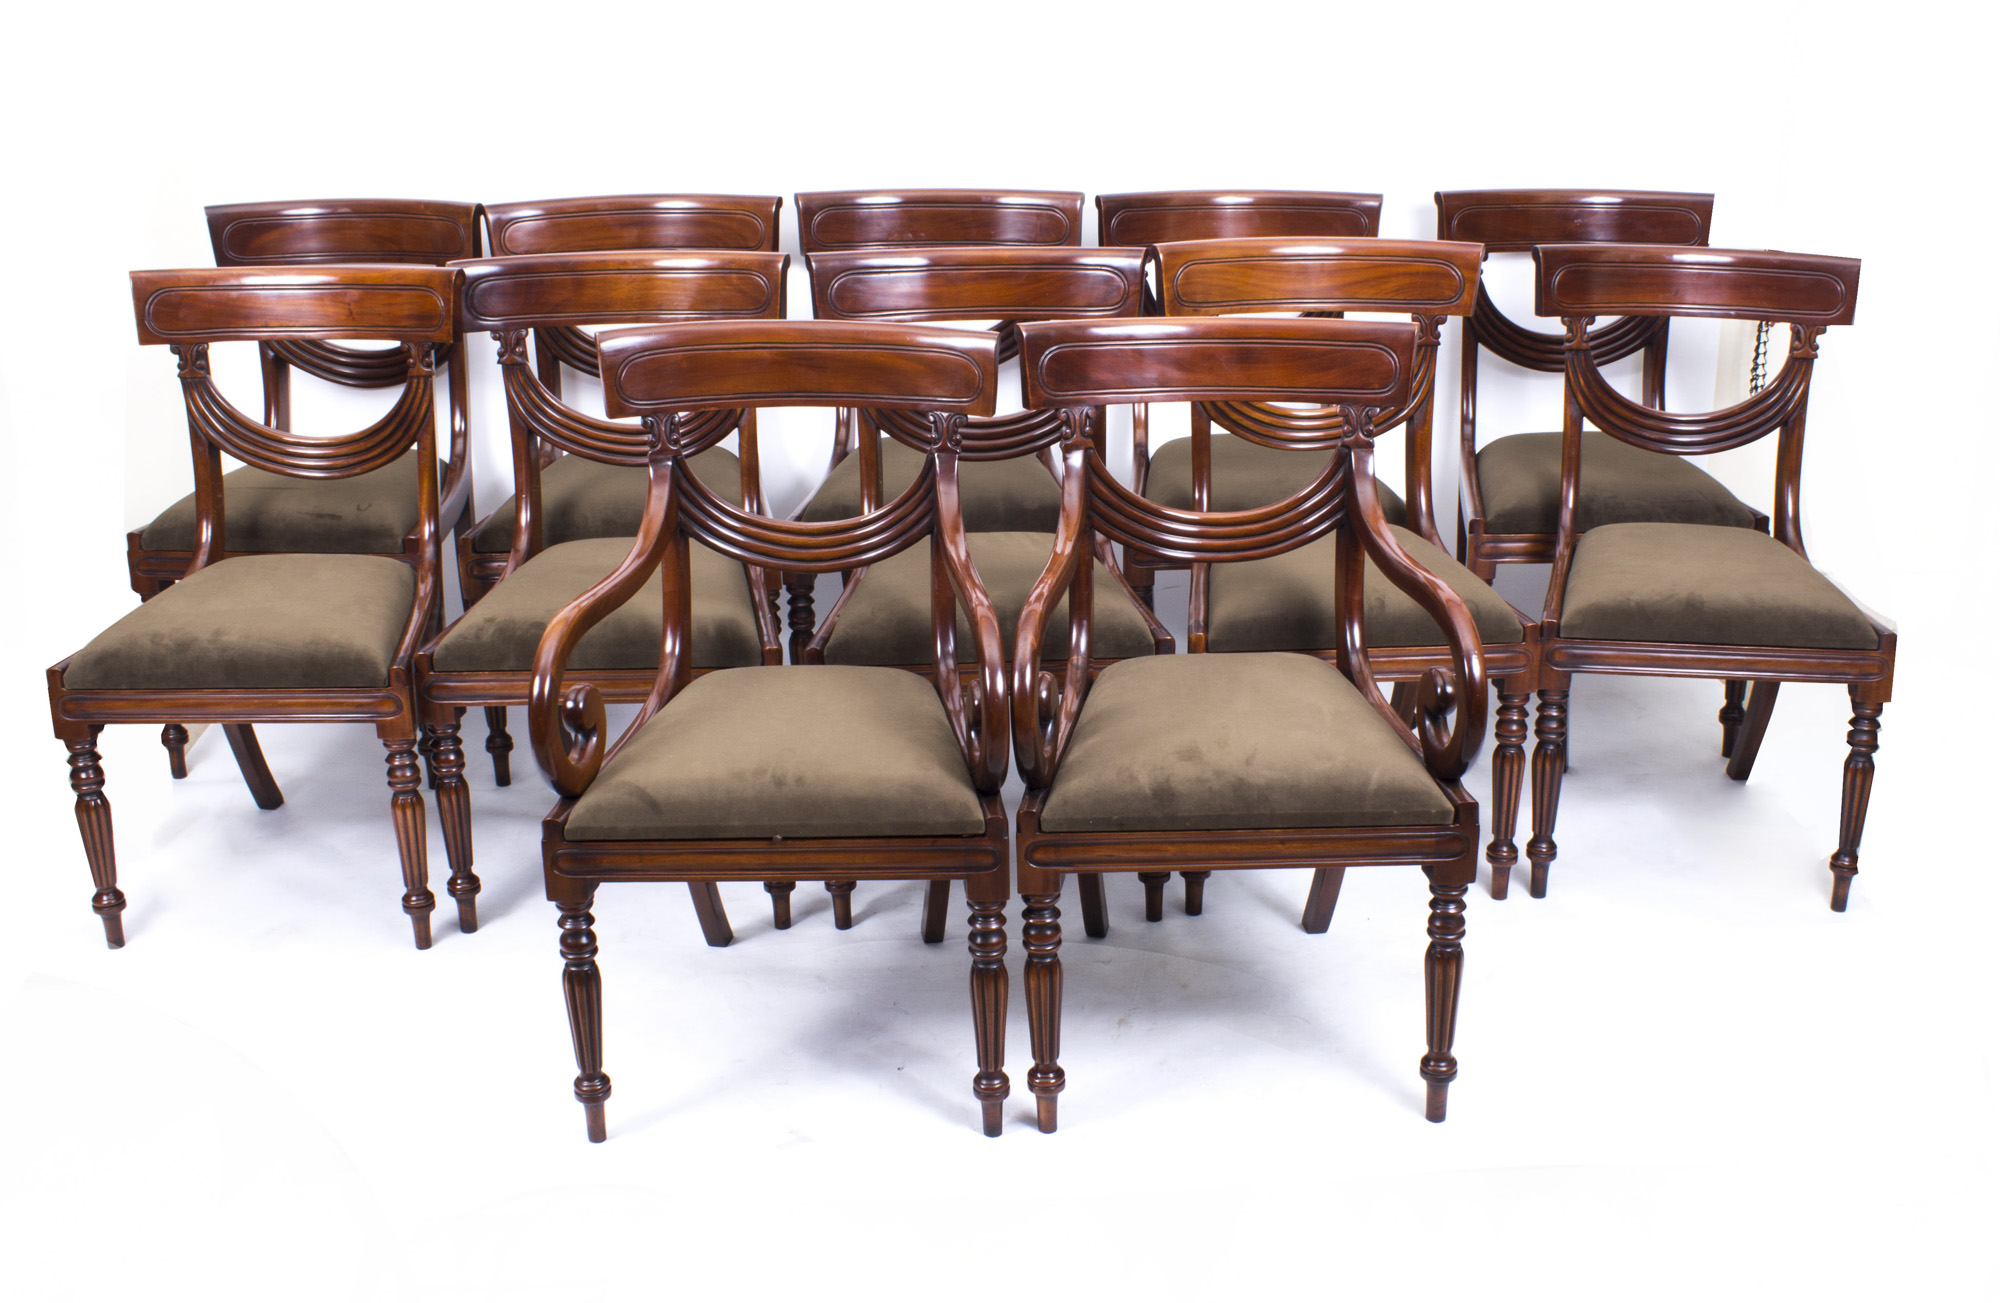 Dining Set 12 Chairs Set 12 Regency Style Mahogany Dining Chairs Regency